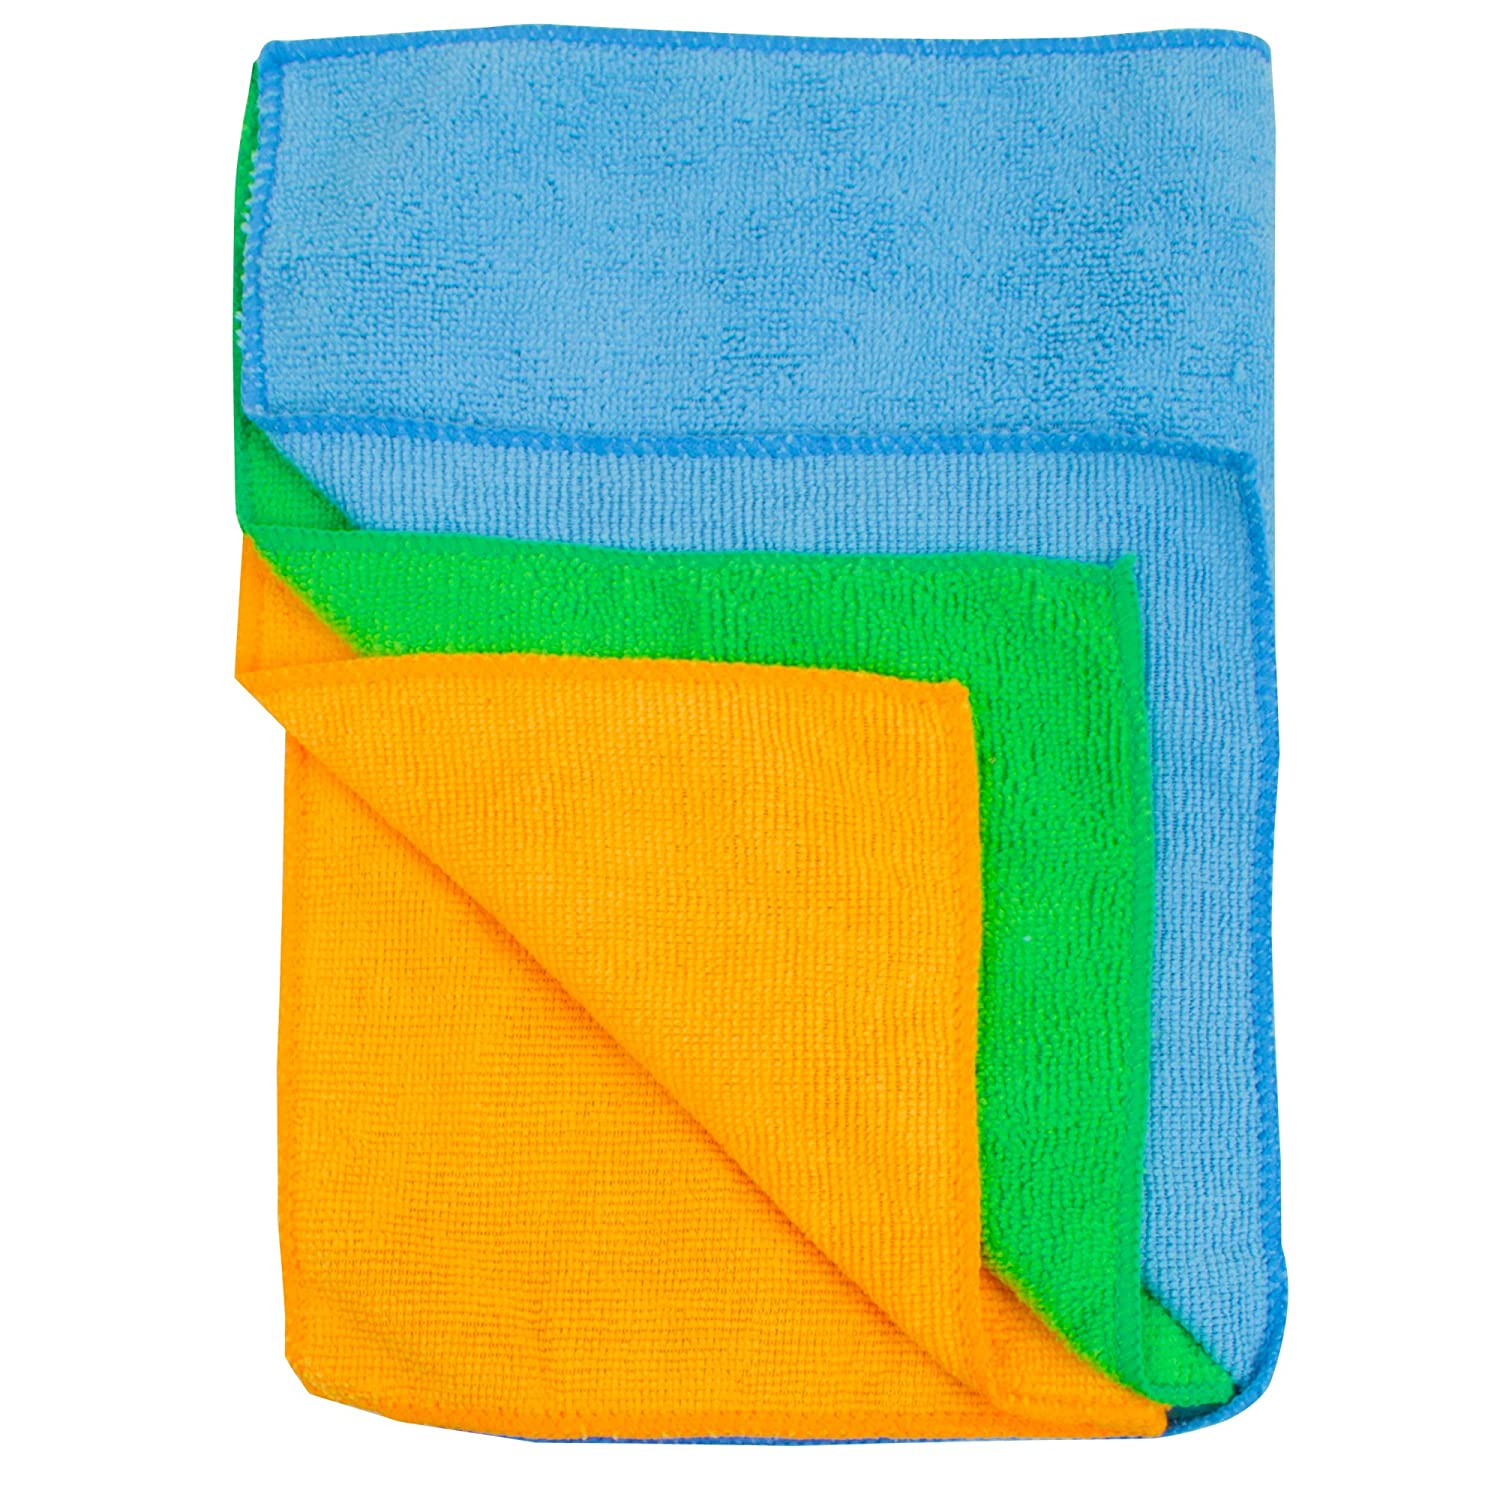 Detailer's Choice 3-503 Roll of Microfiber Cleaning Cloths - 3-Pack - 1-Each Detailer' s Choice